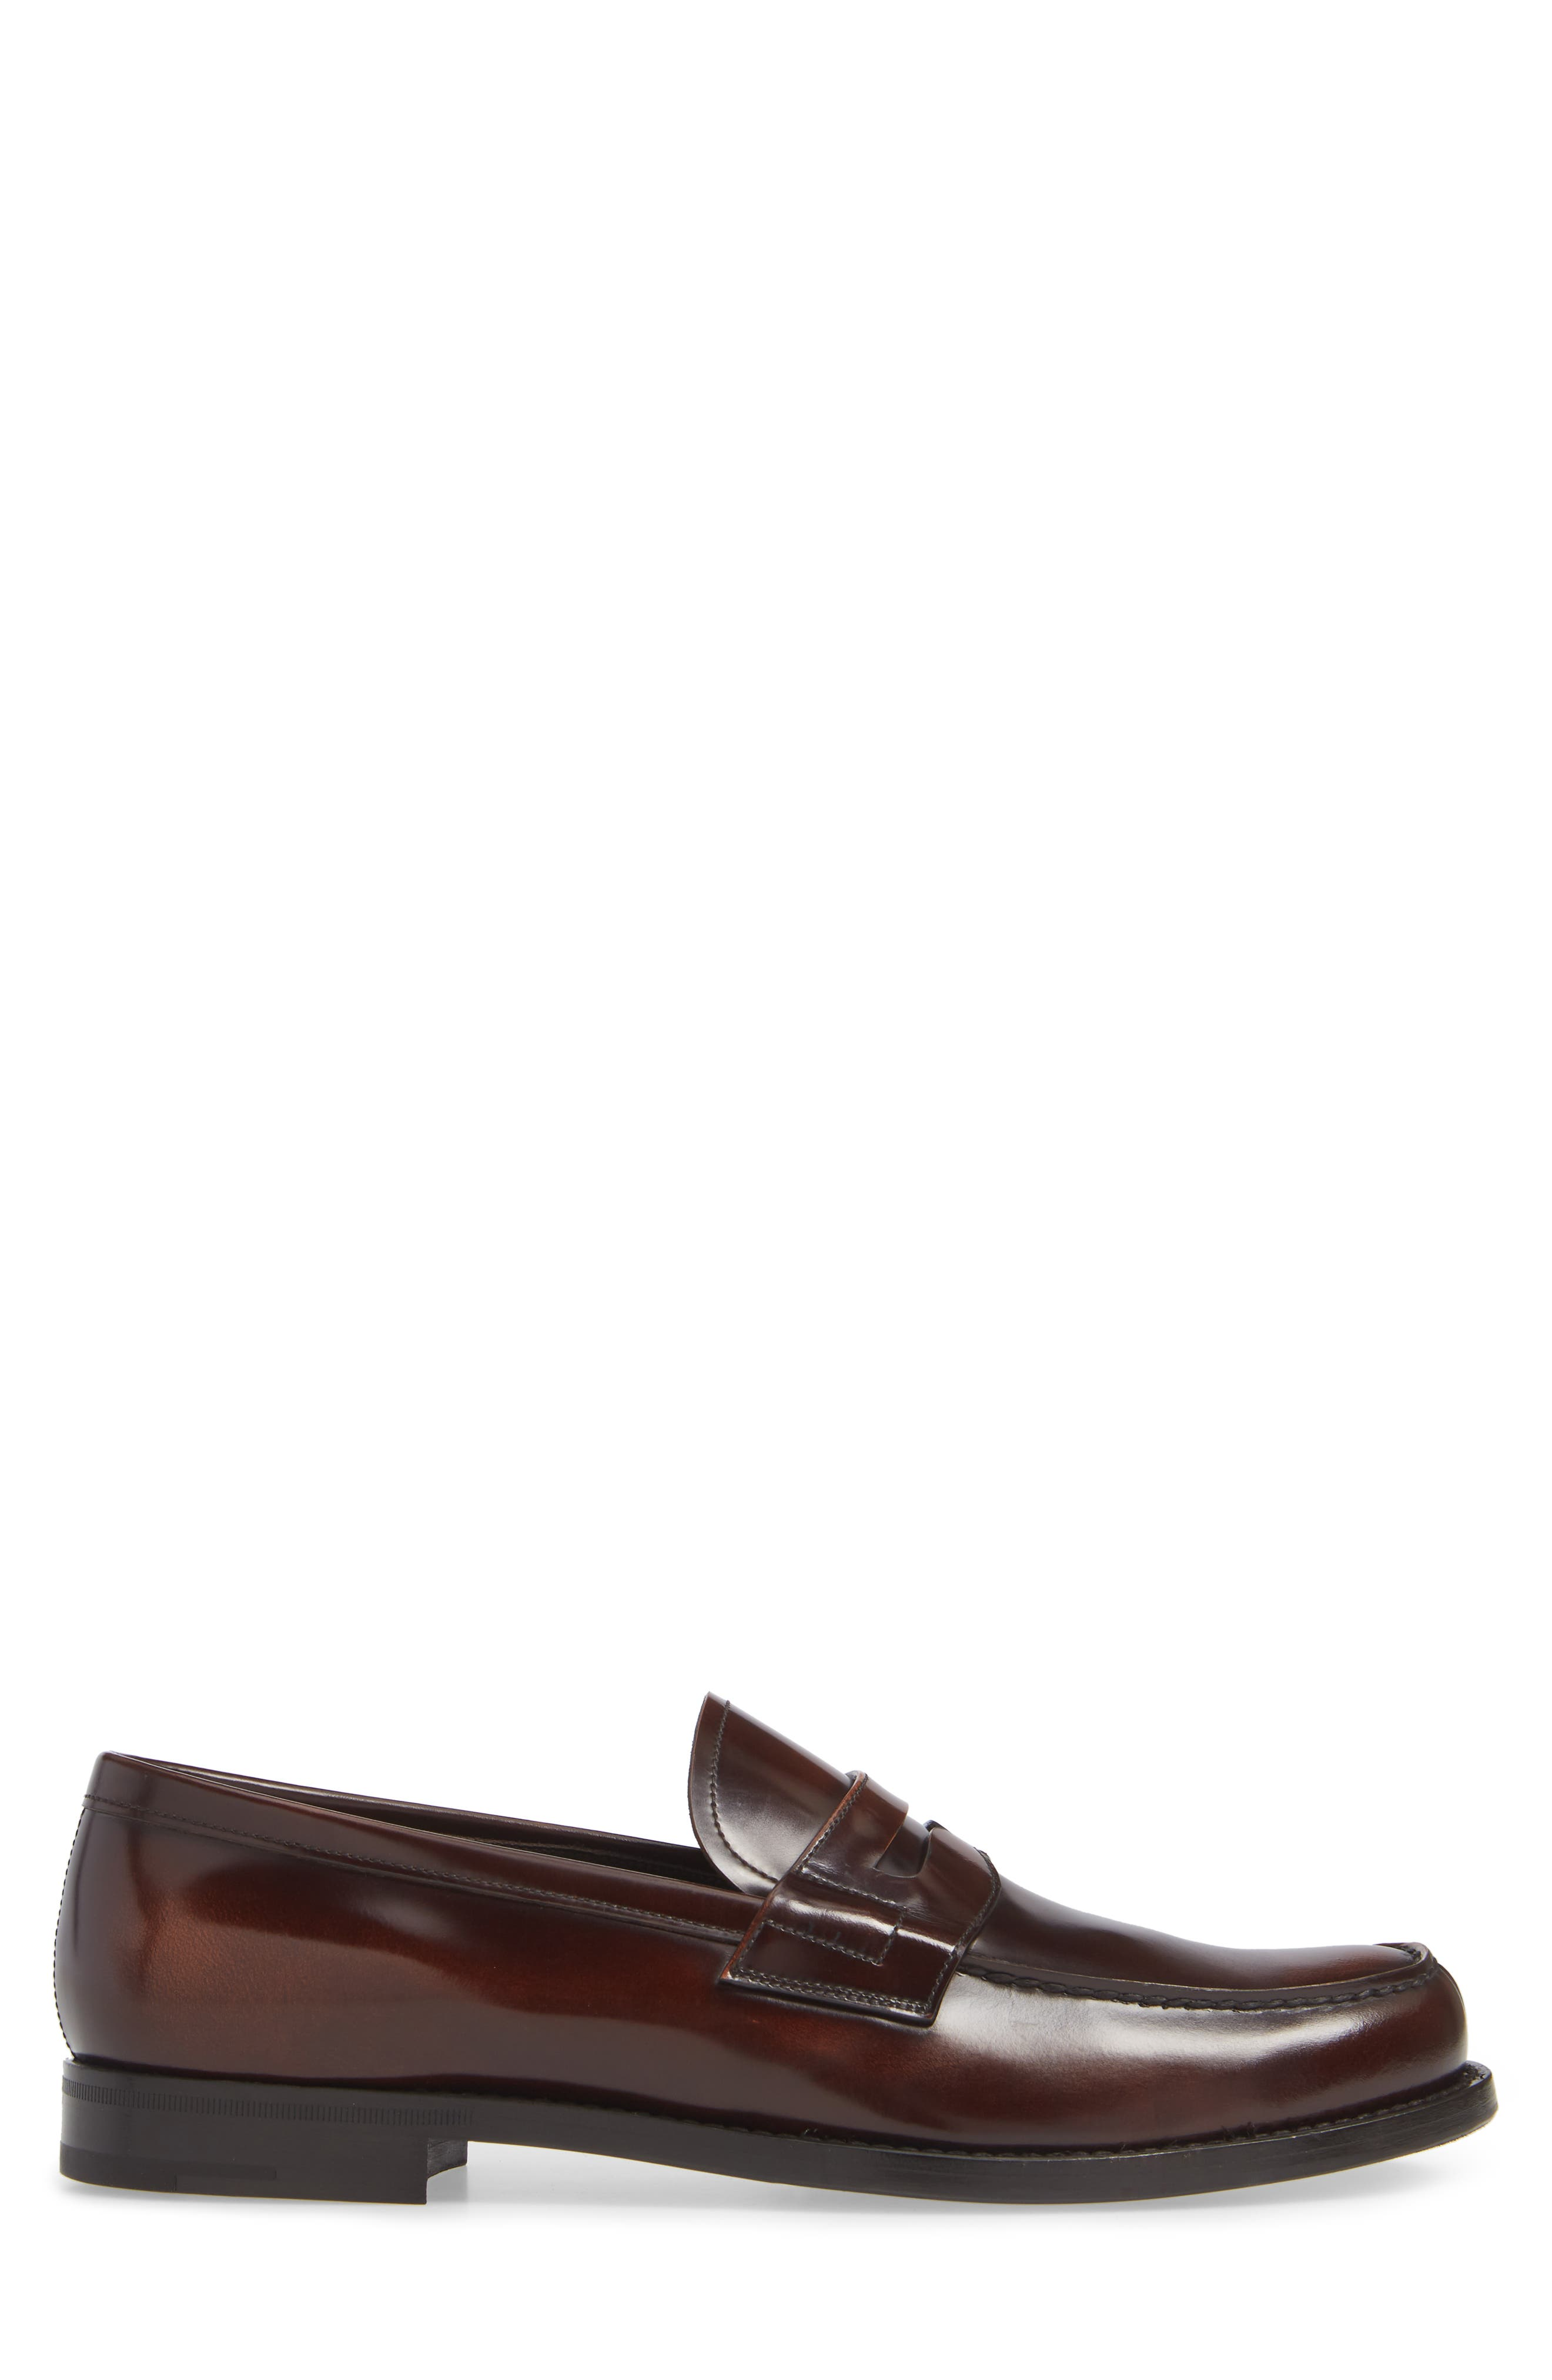 Penny Loafer,                             Alternate thumbnail 3, color,                             TOBACCO